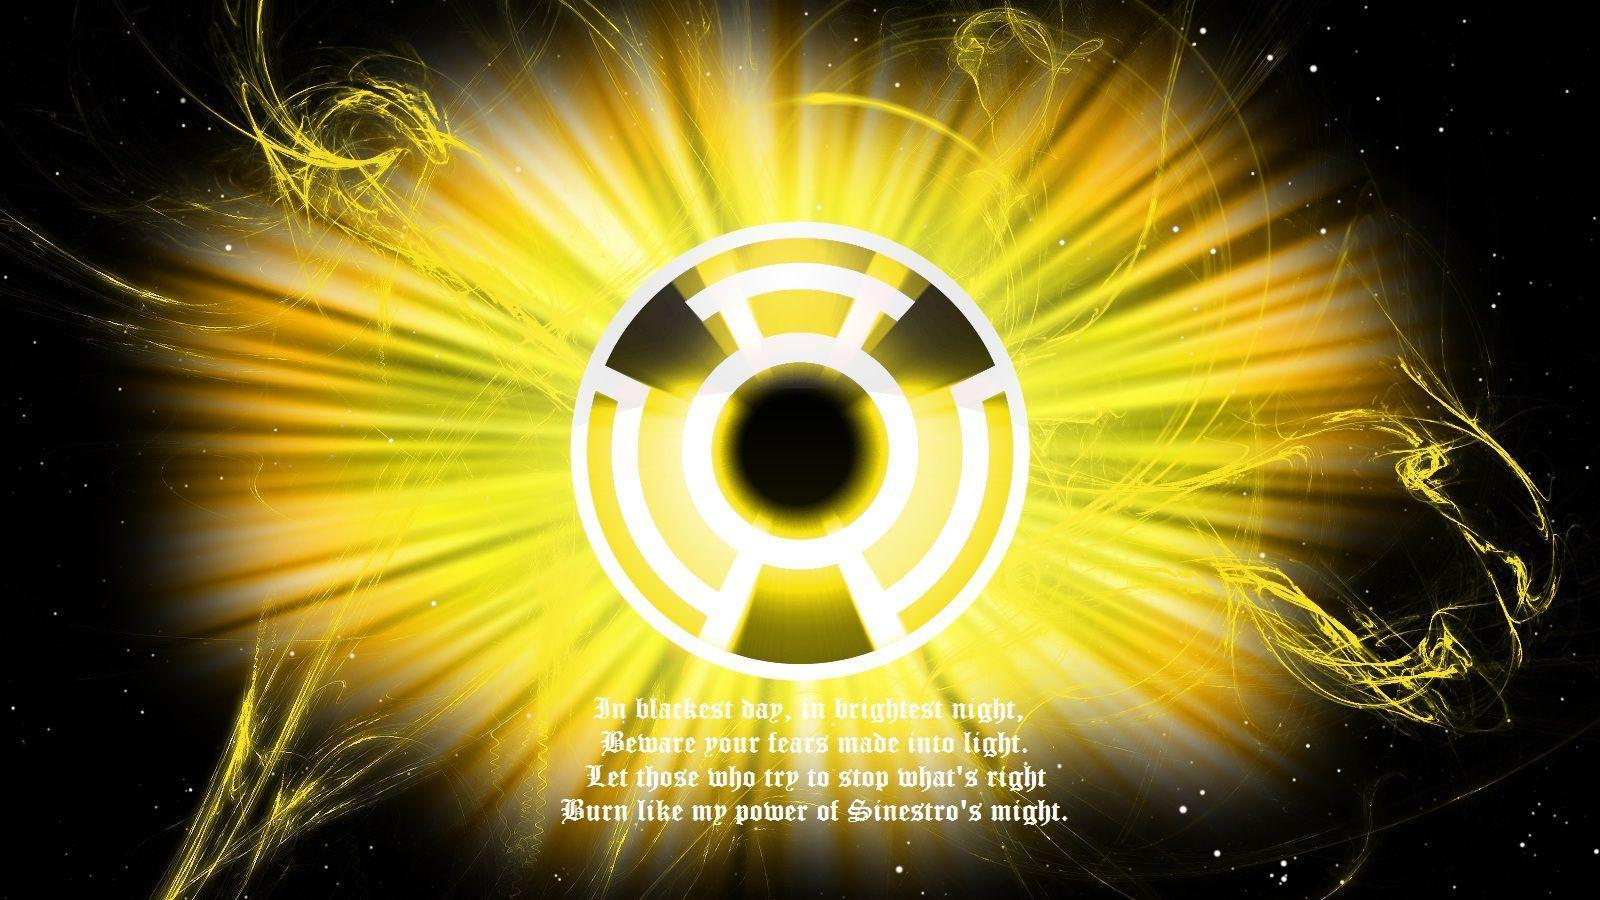 10 Sinestro Corps HD Wallpapers | Backgrounds - Wallpaper Abyss